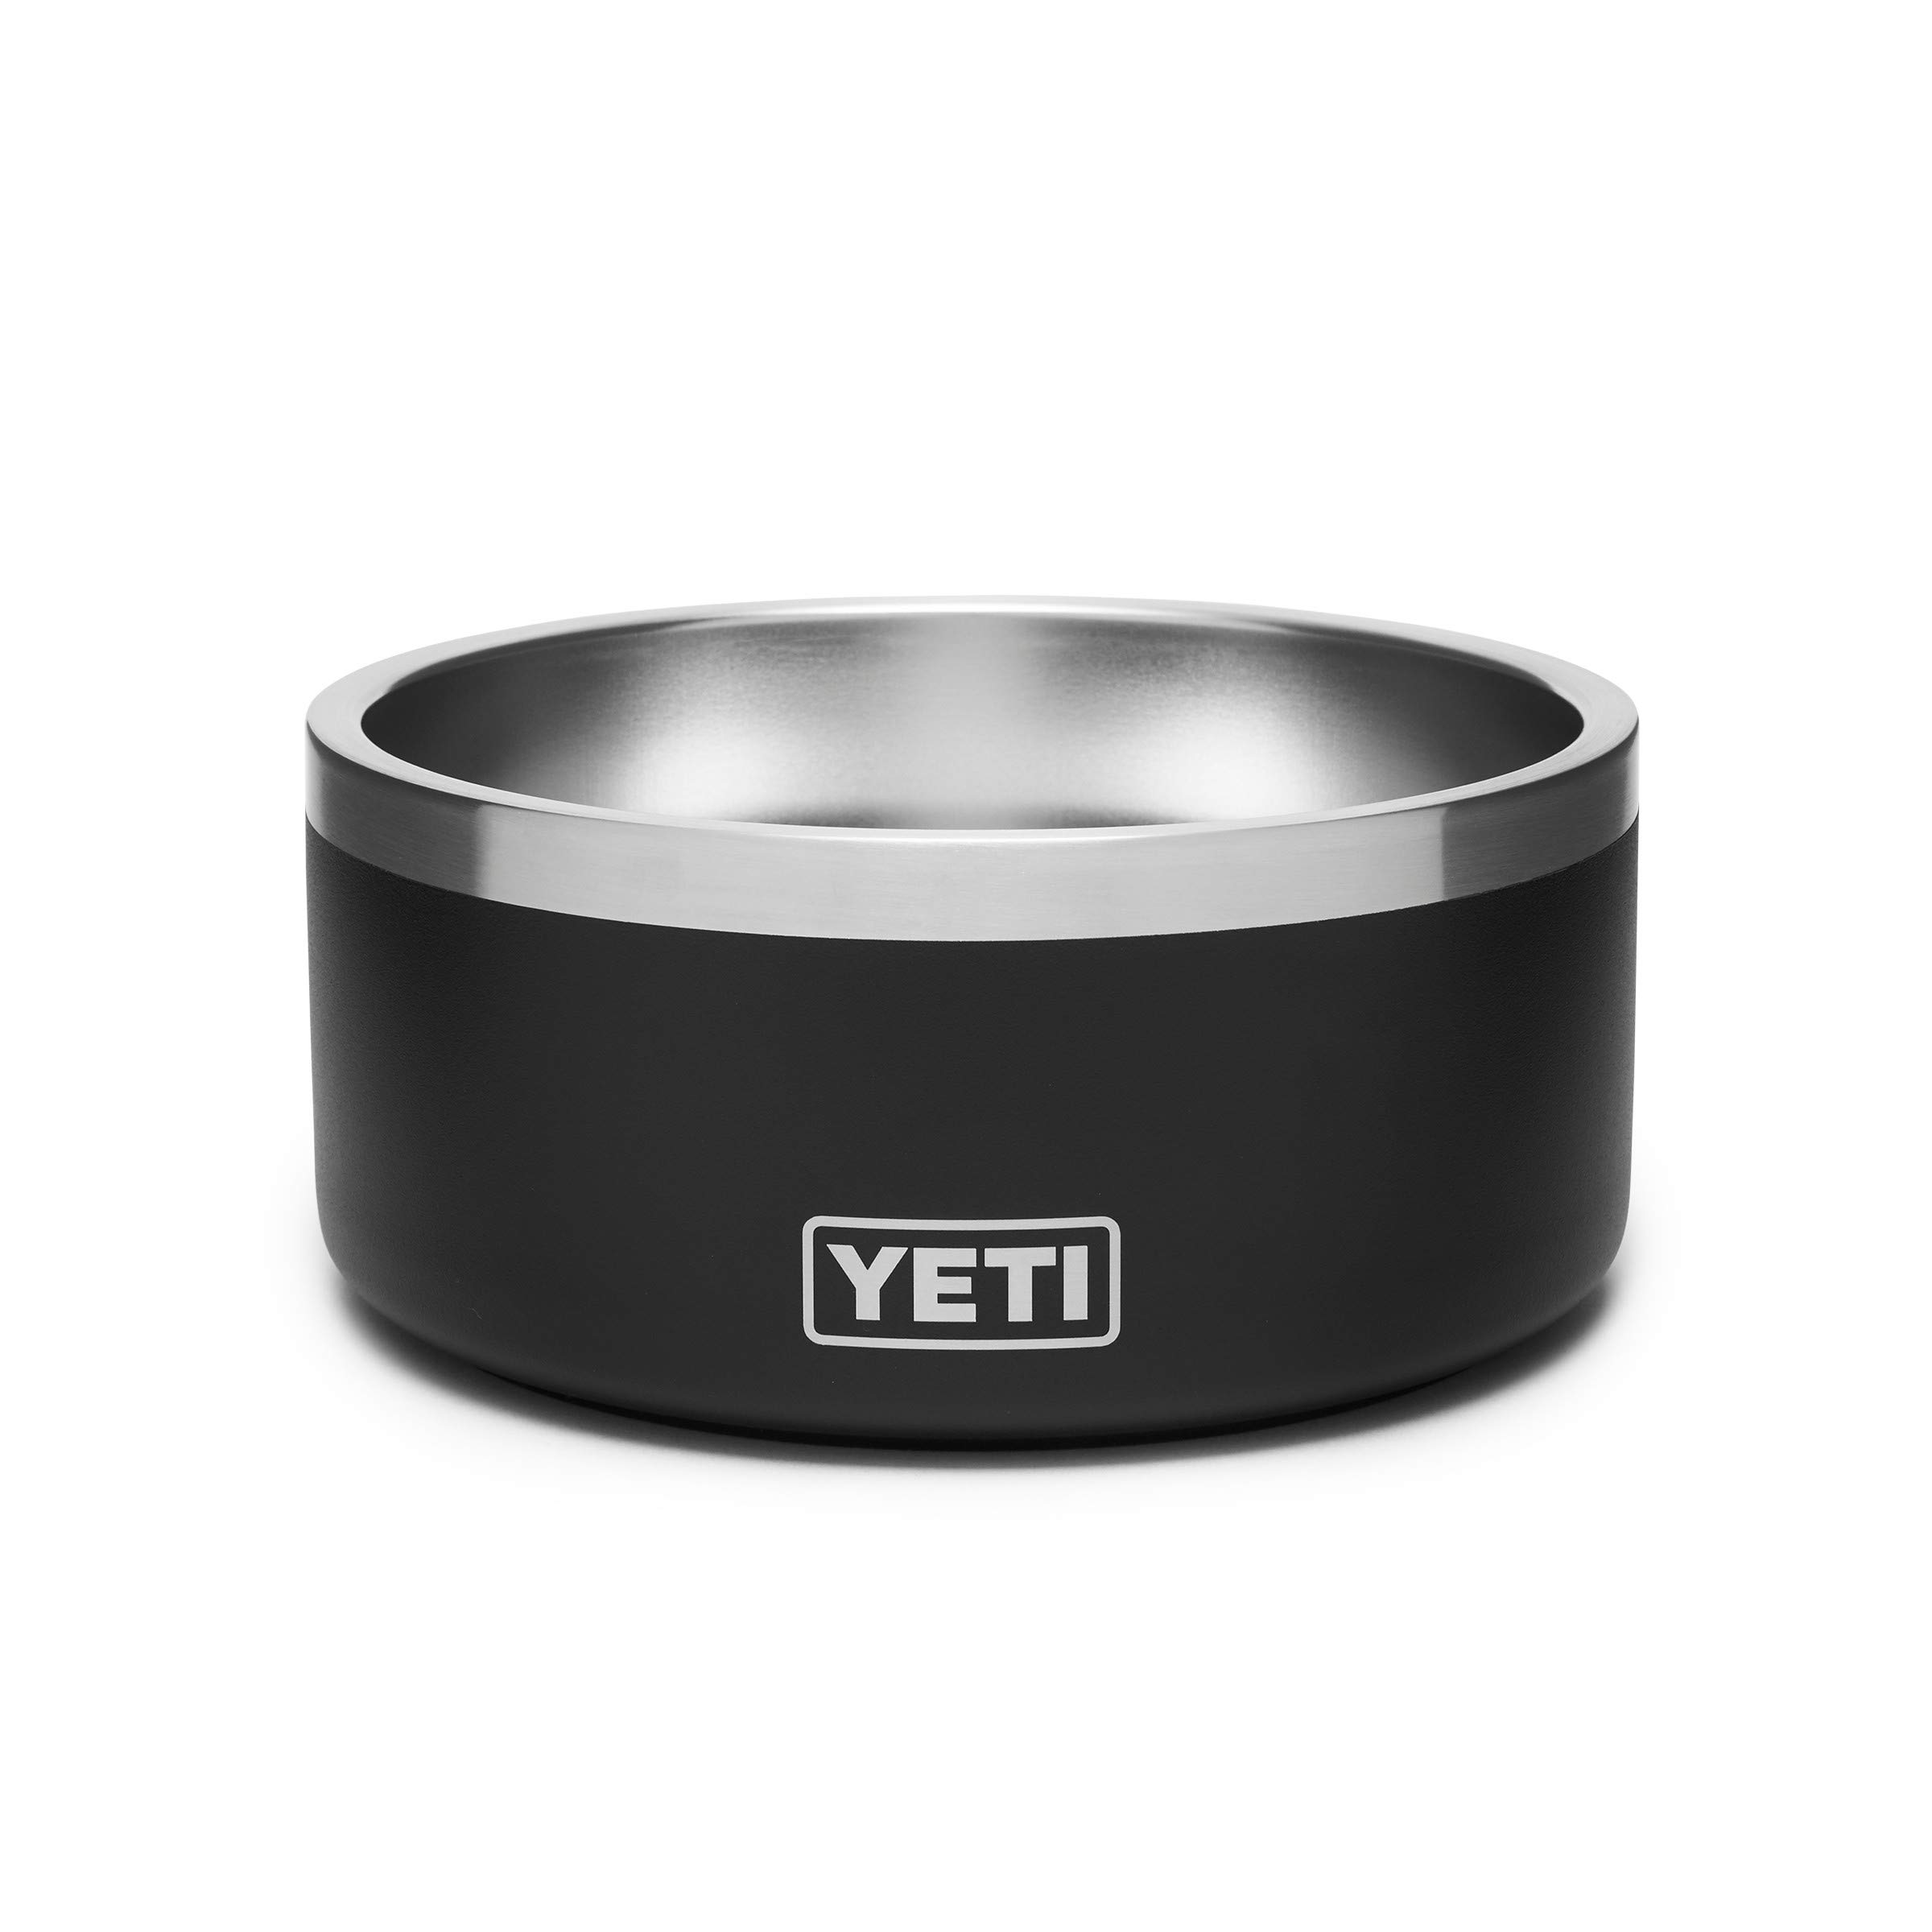 YETI Boomer 4 Stainless Steel, Non-Slip Dog Bowl, Black by YETI